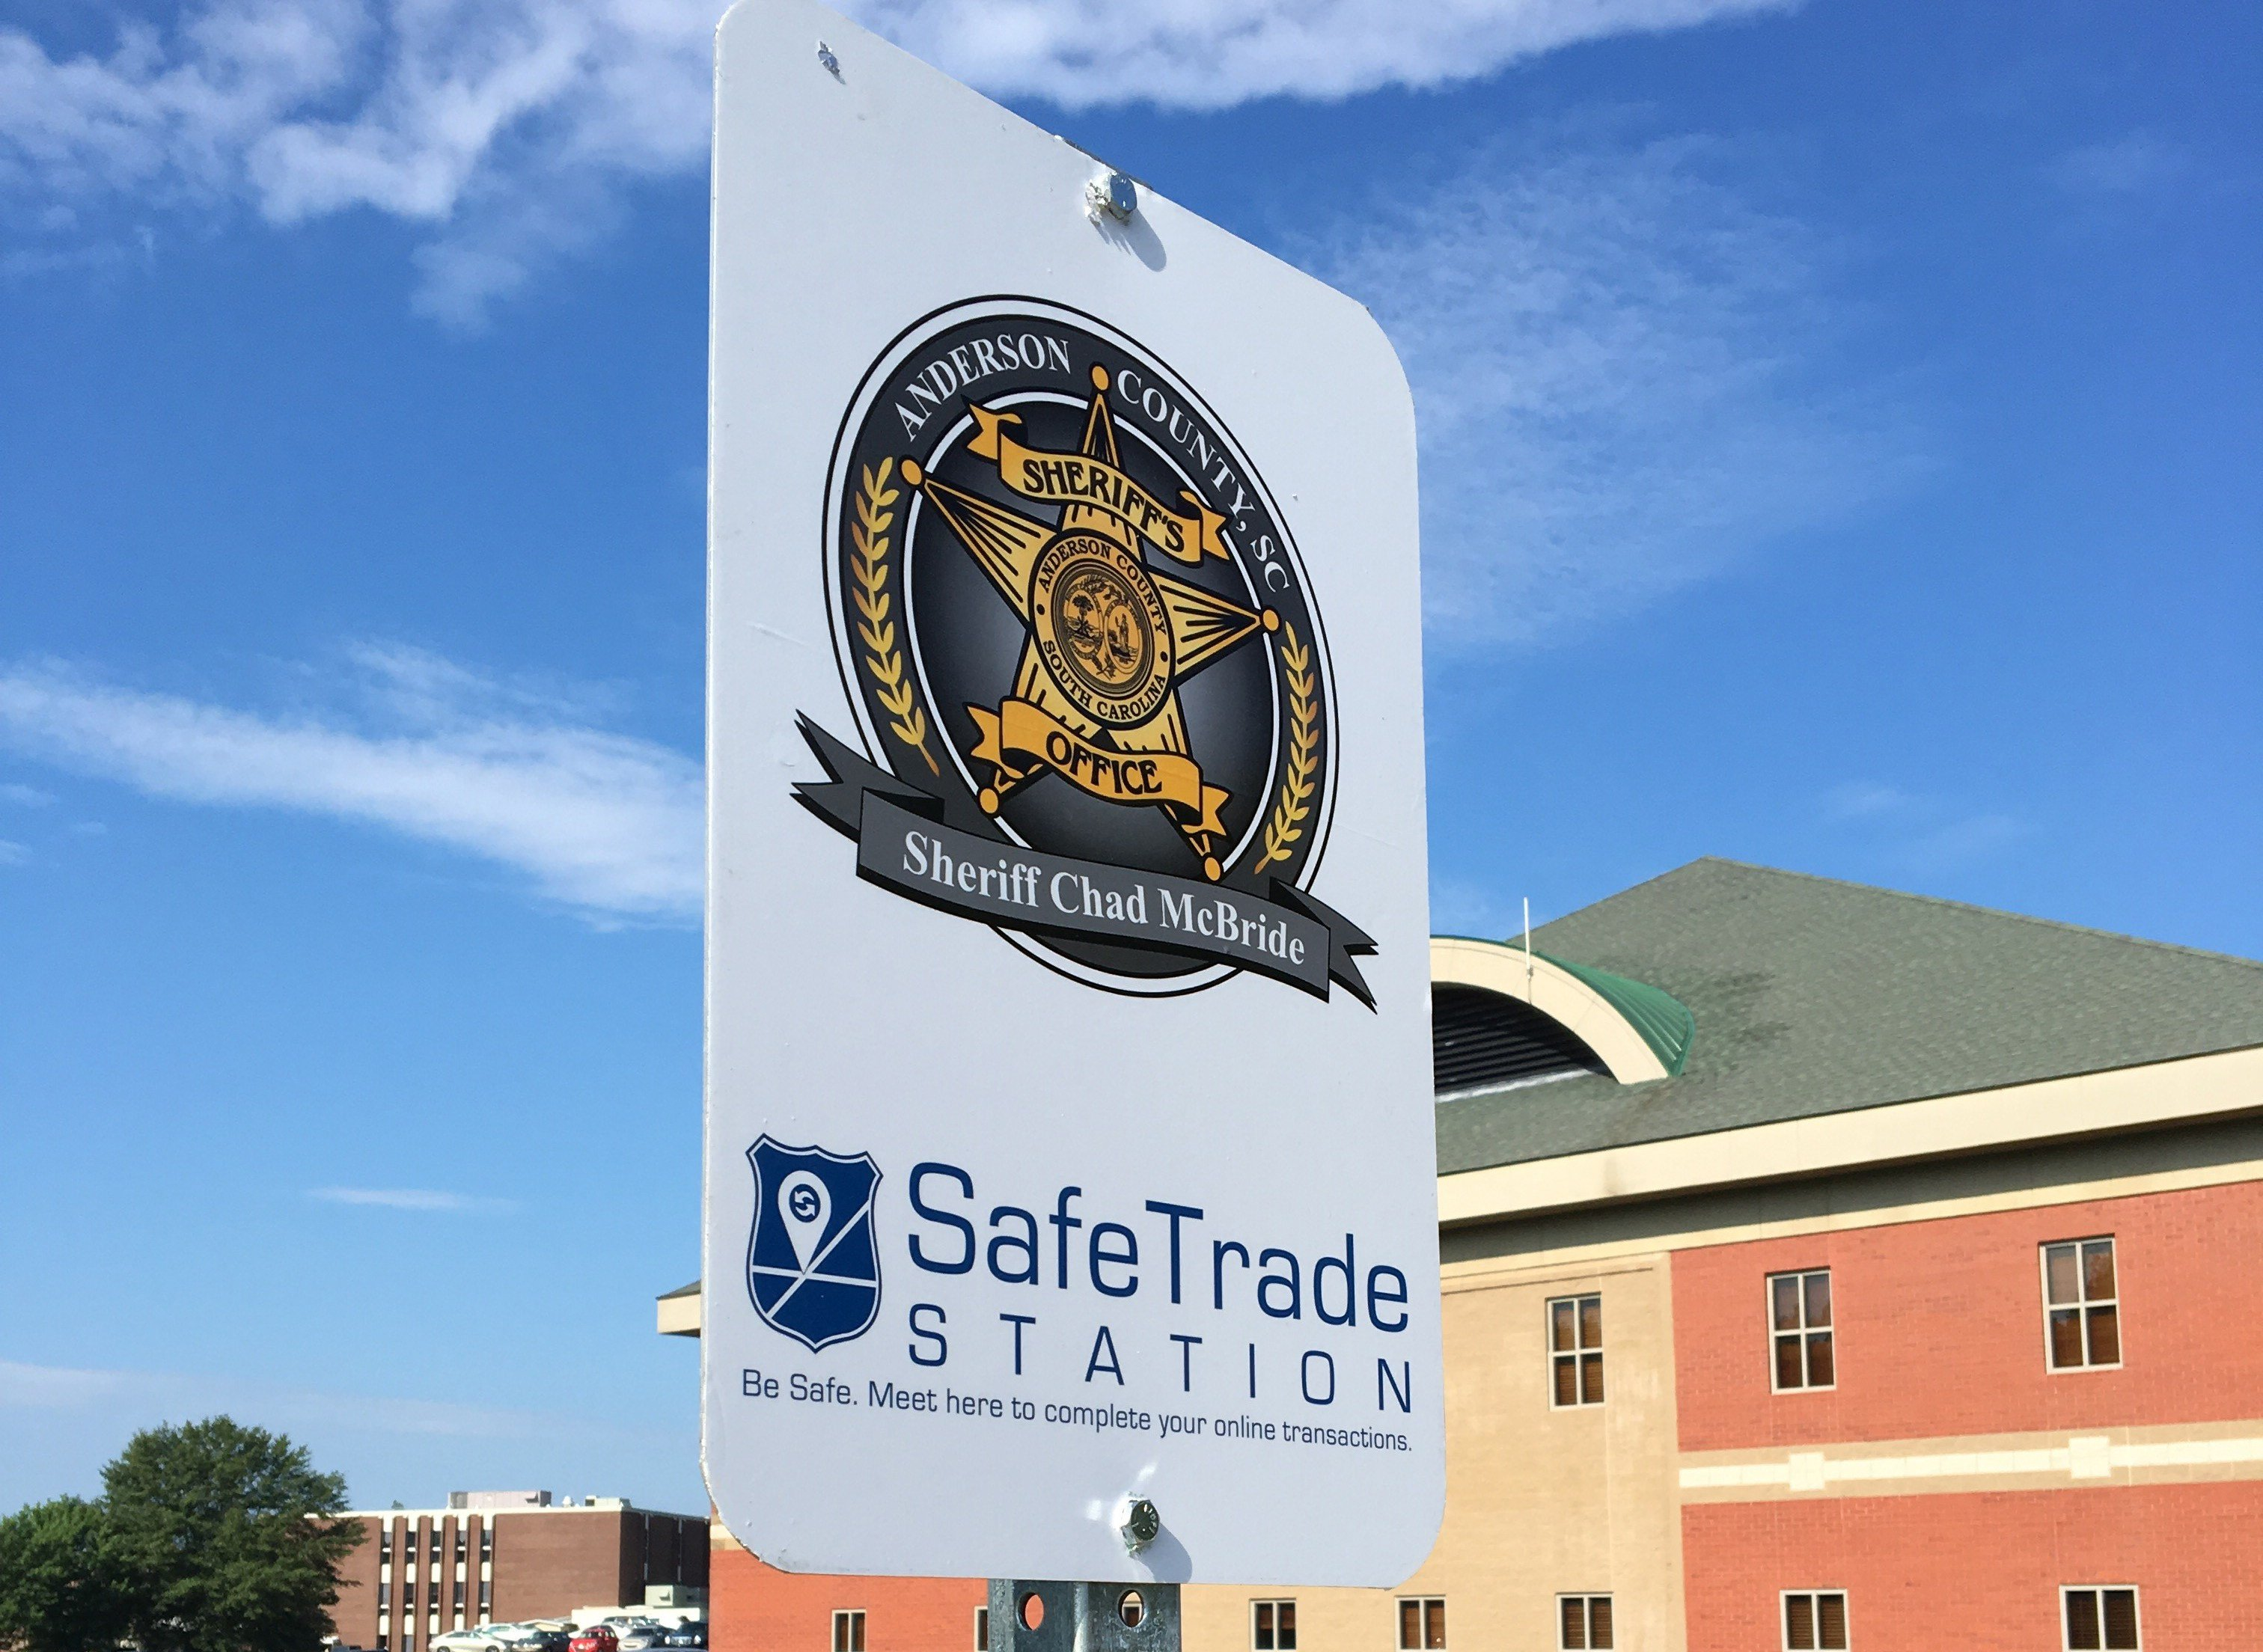 Anderson County Sheriff's Office SafeTrade Station (SOURCE: ACSO)